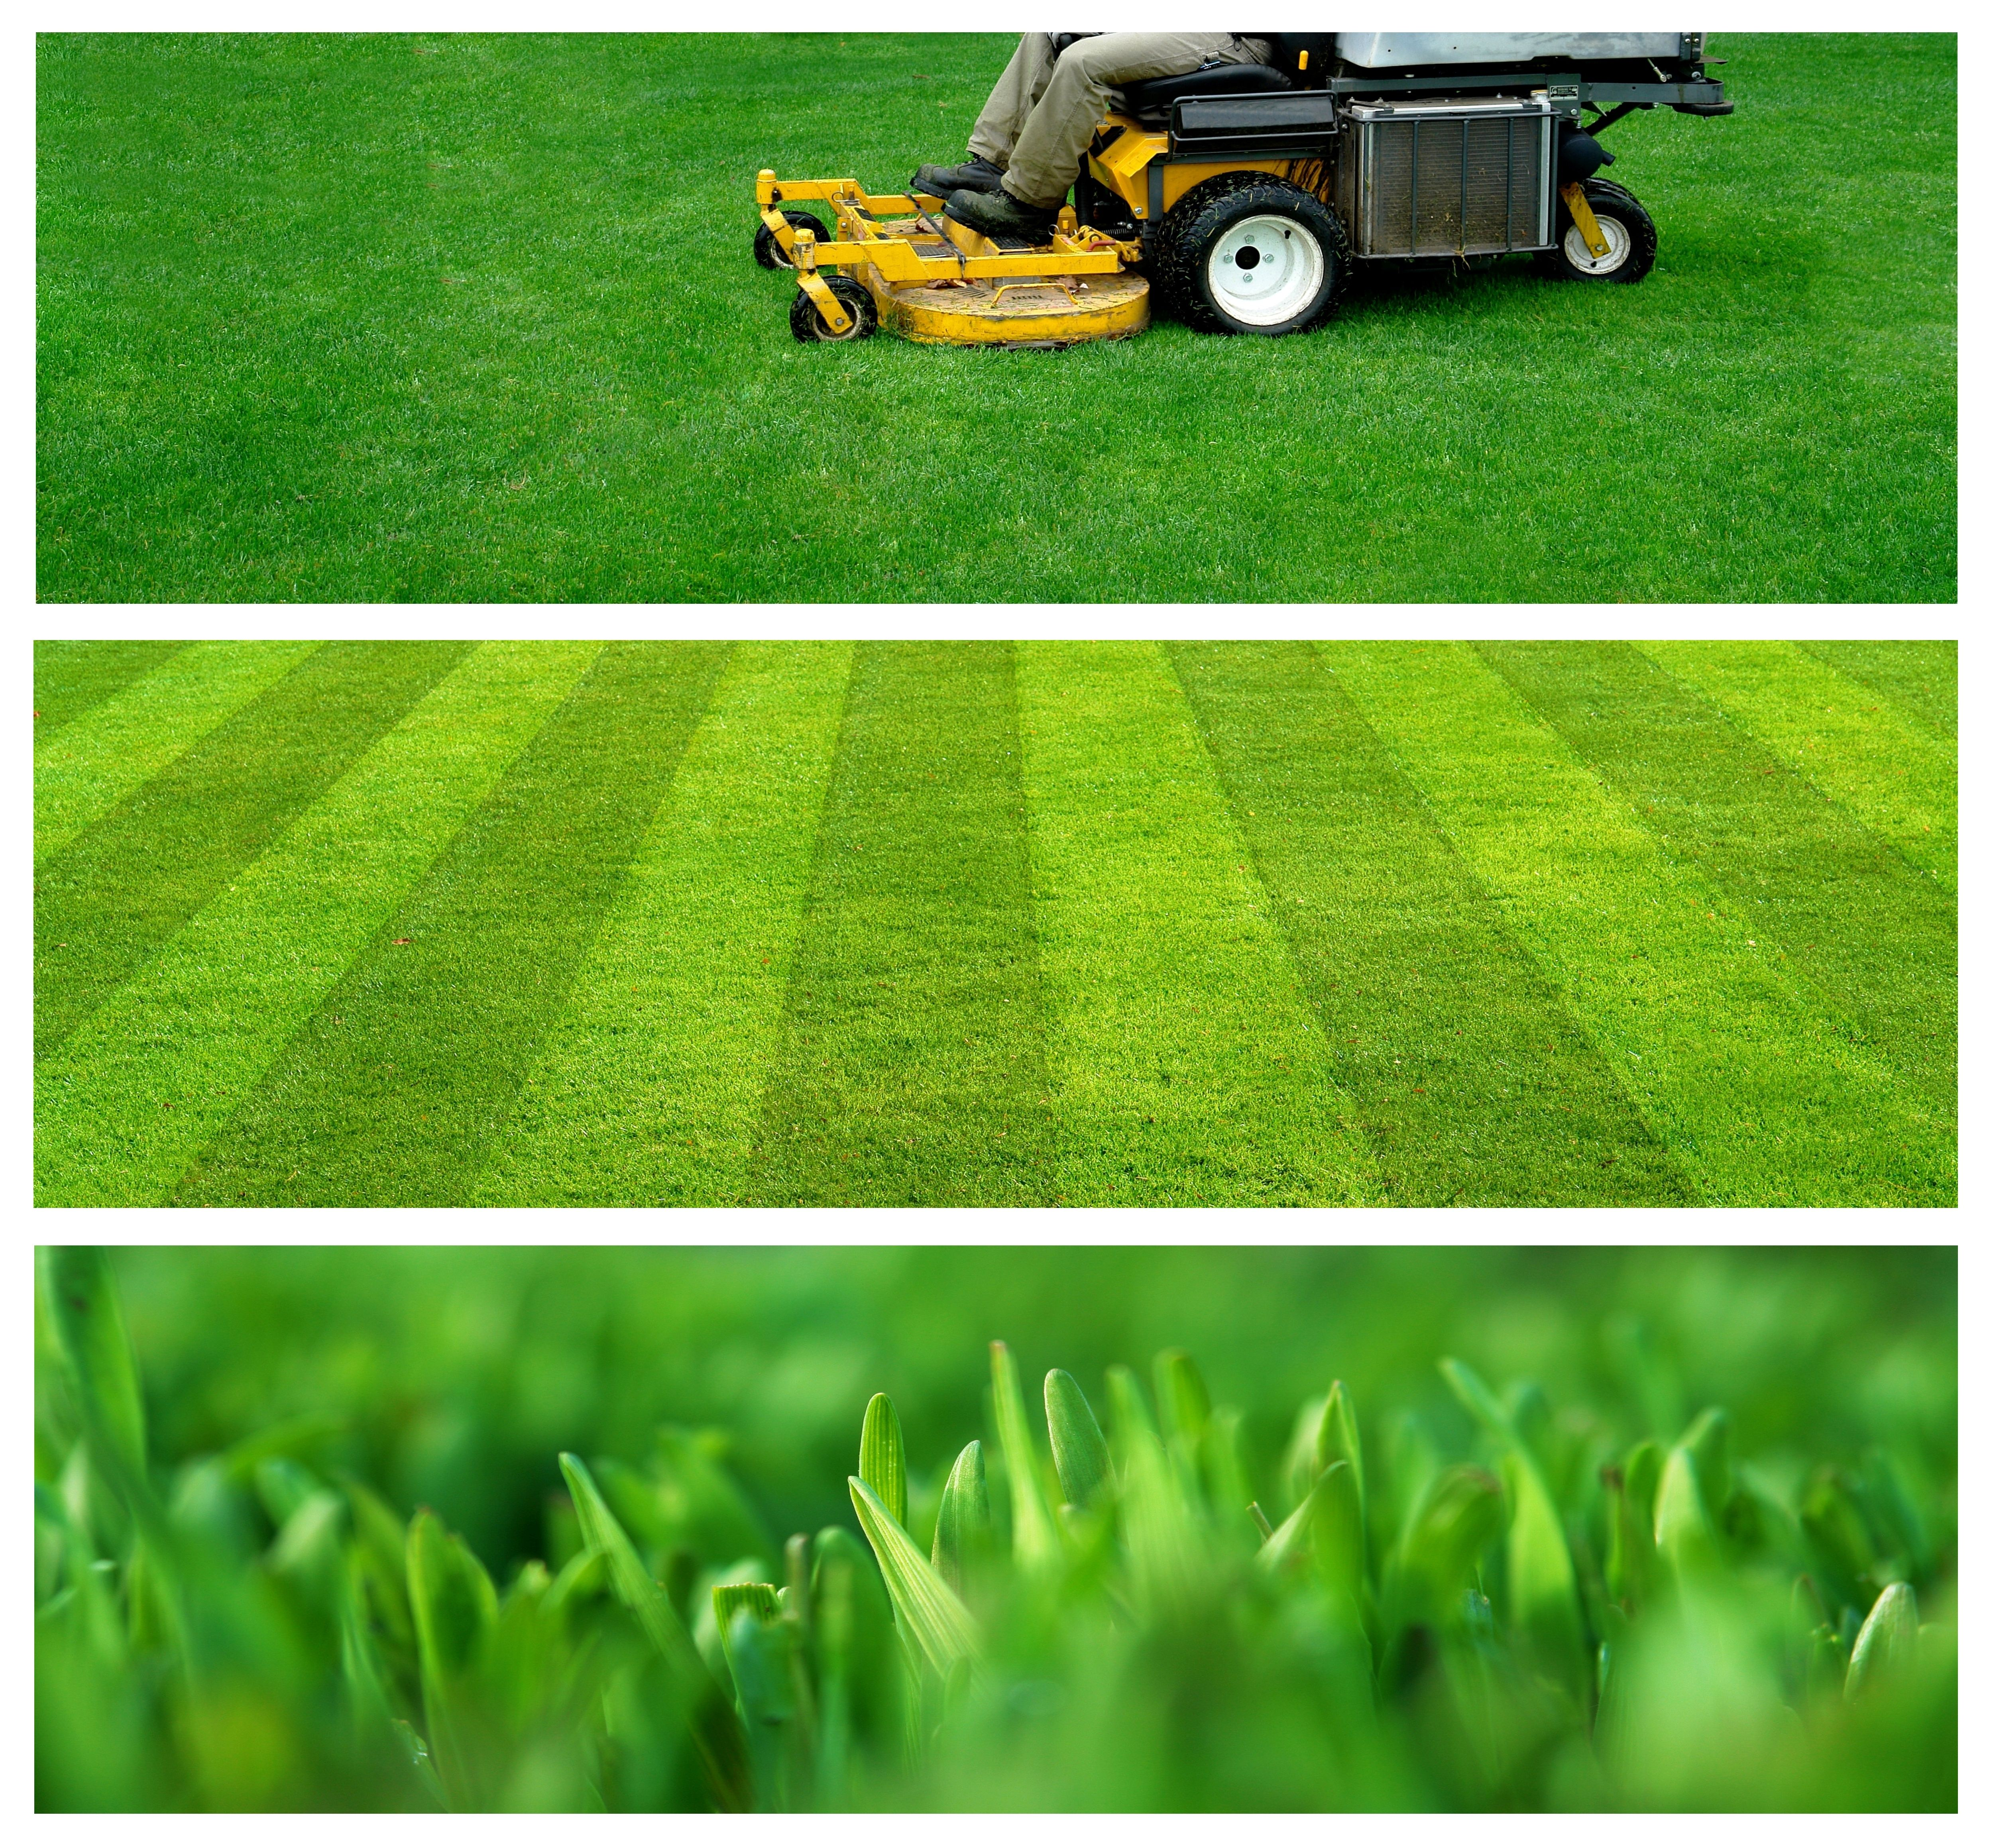 10 Tips for finding the perfect lawn mower this season! #lawncare